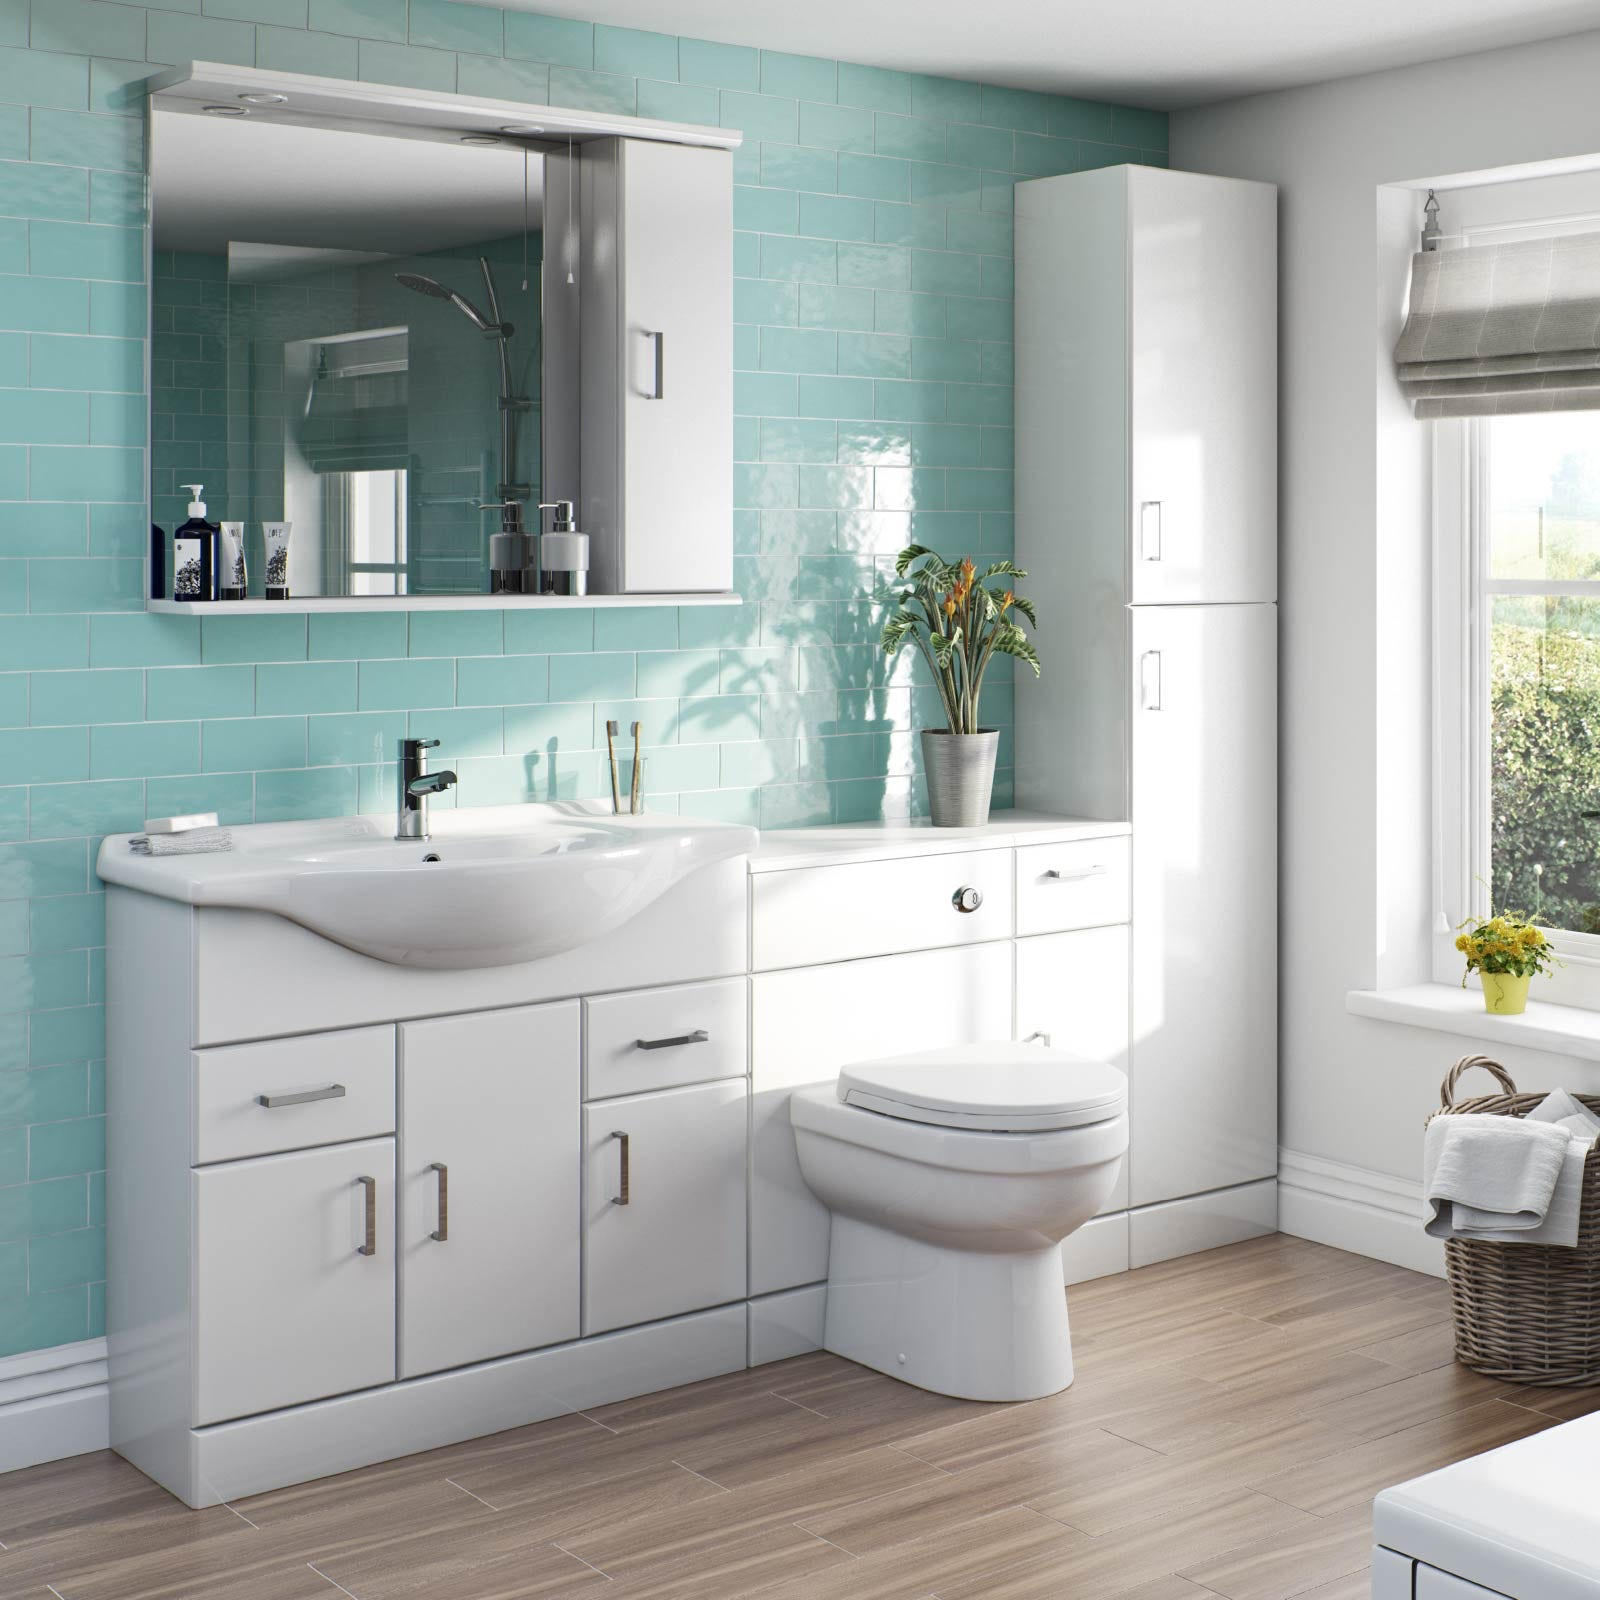 Eden white bathroom furniture range